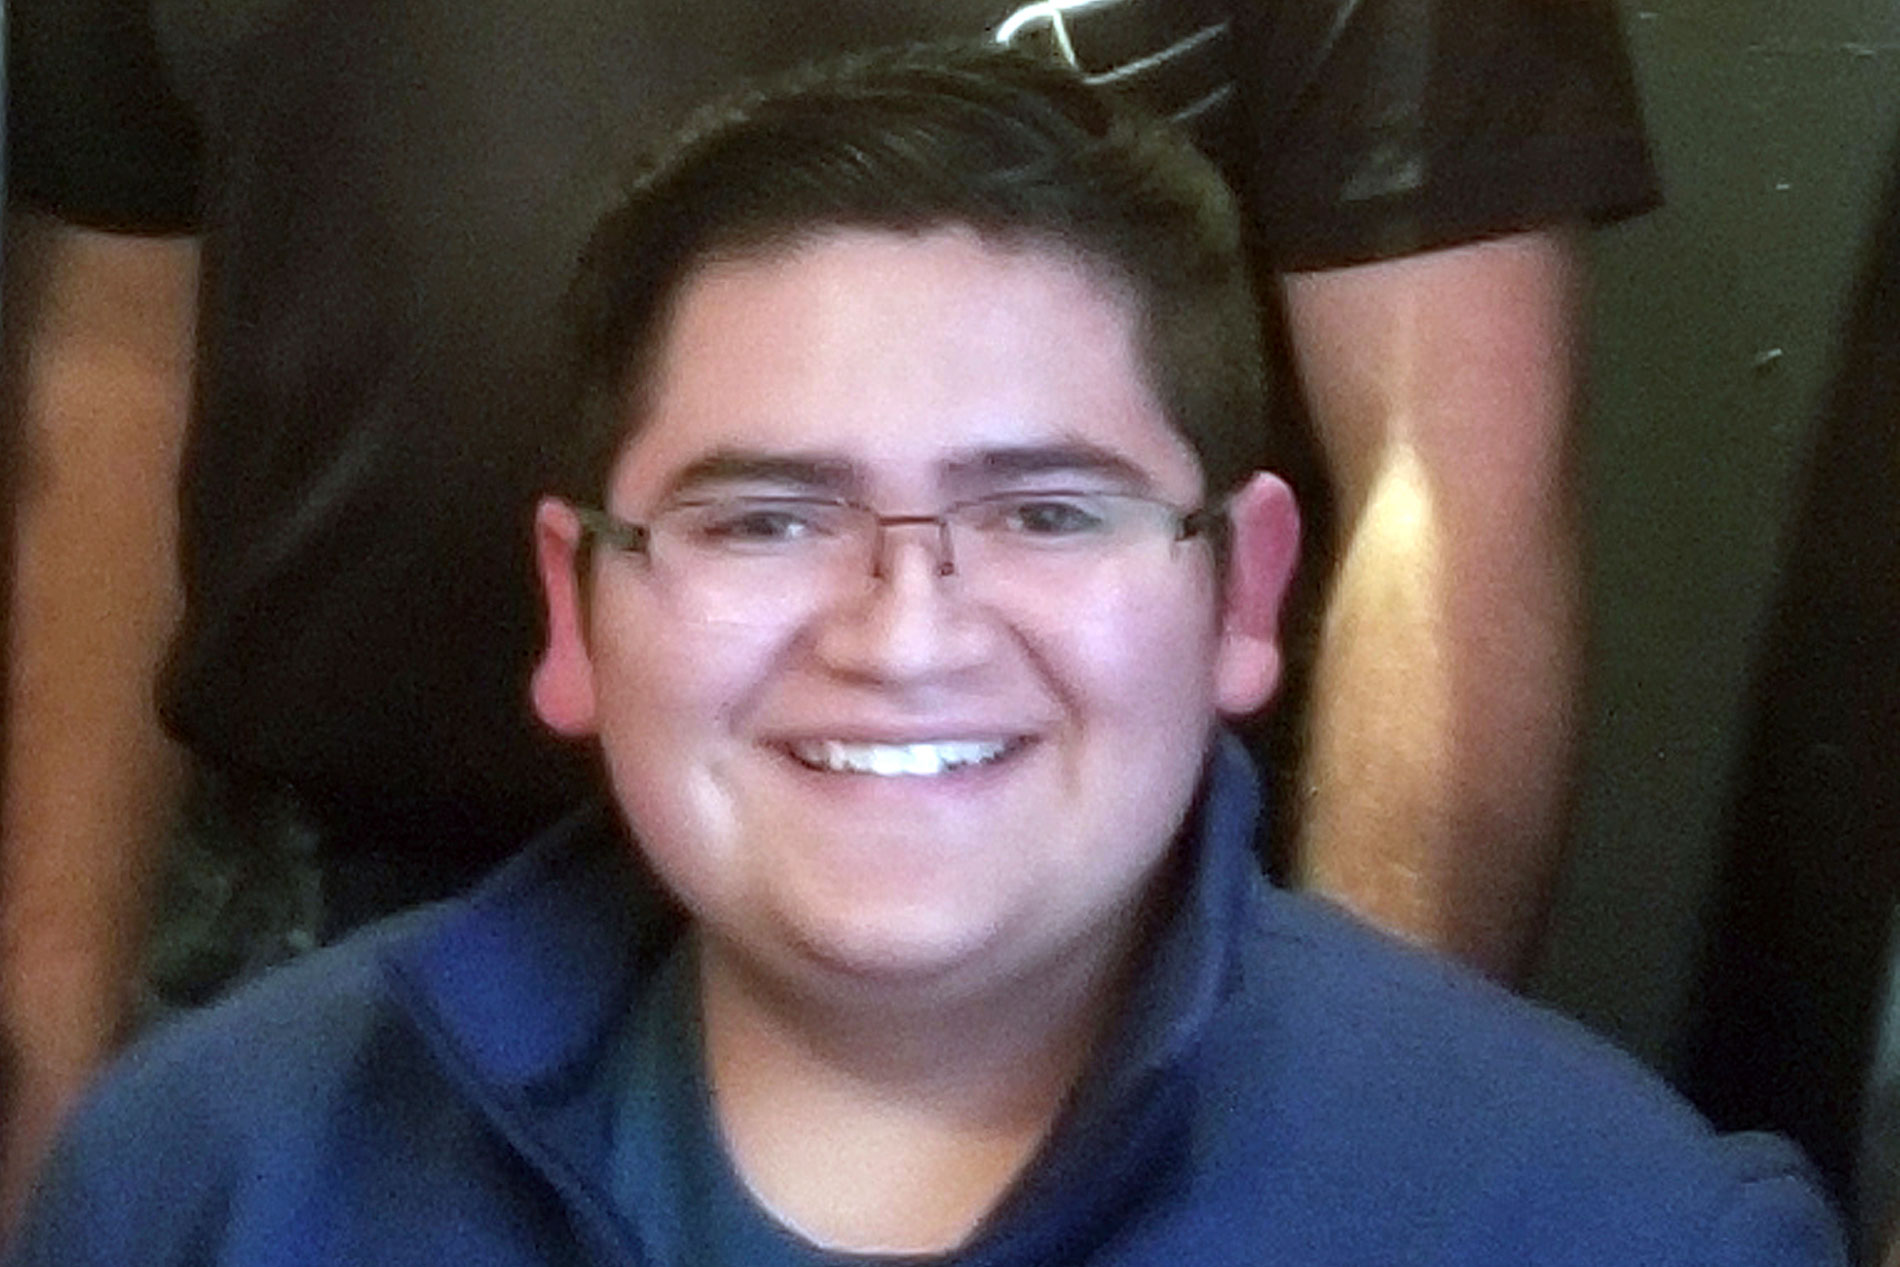 Photo: STEM School Shooting 8 | Kendrick Castillo - AP